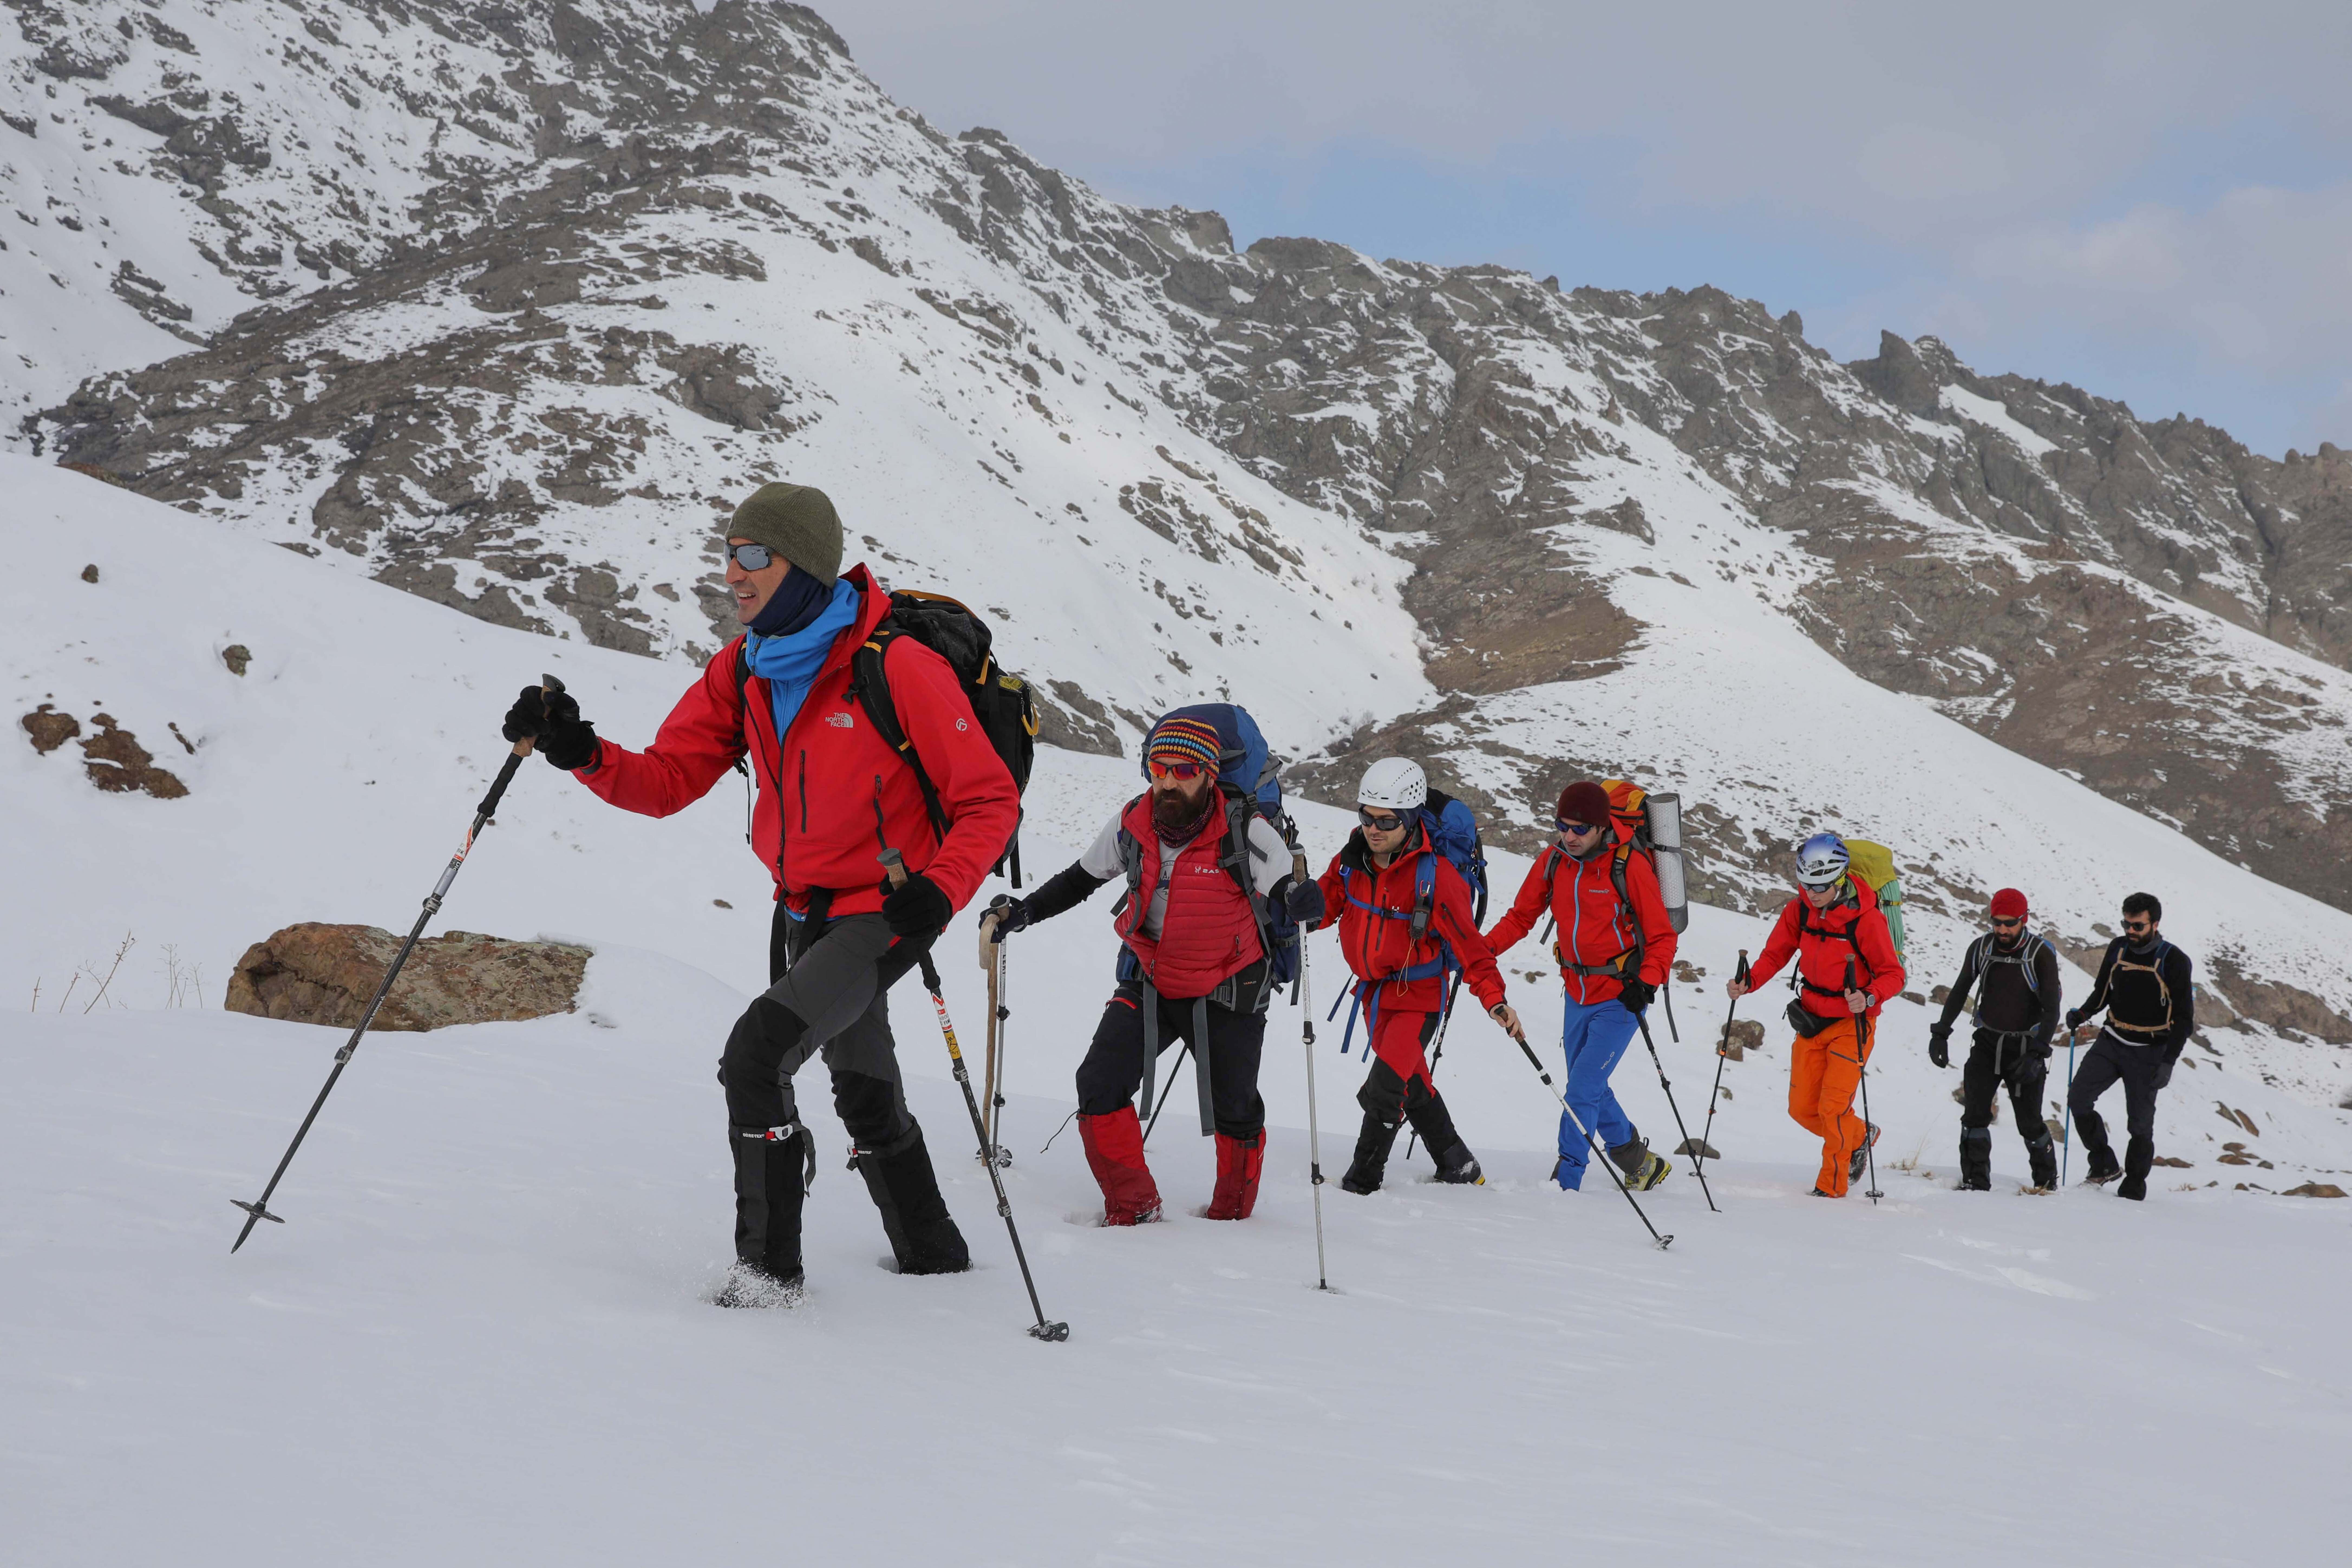 Turkey's prominent mountaineer gets ready for most dangerous peaks